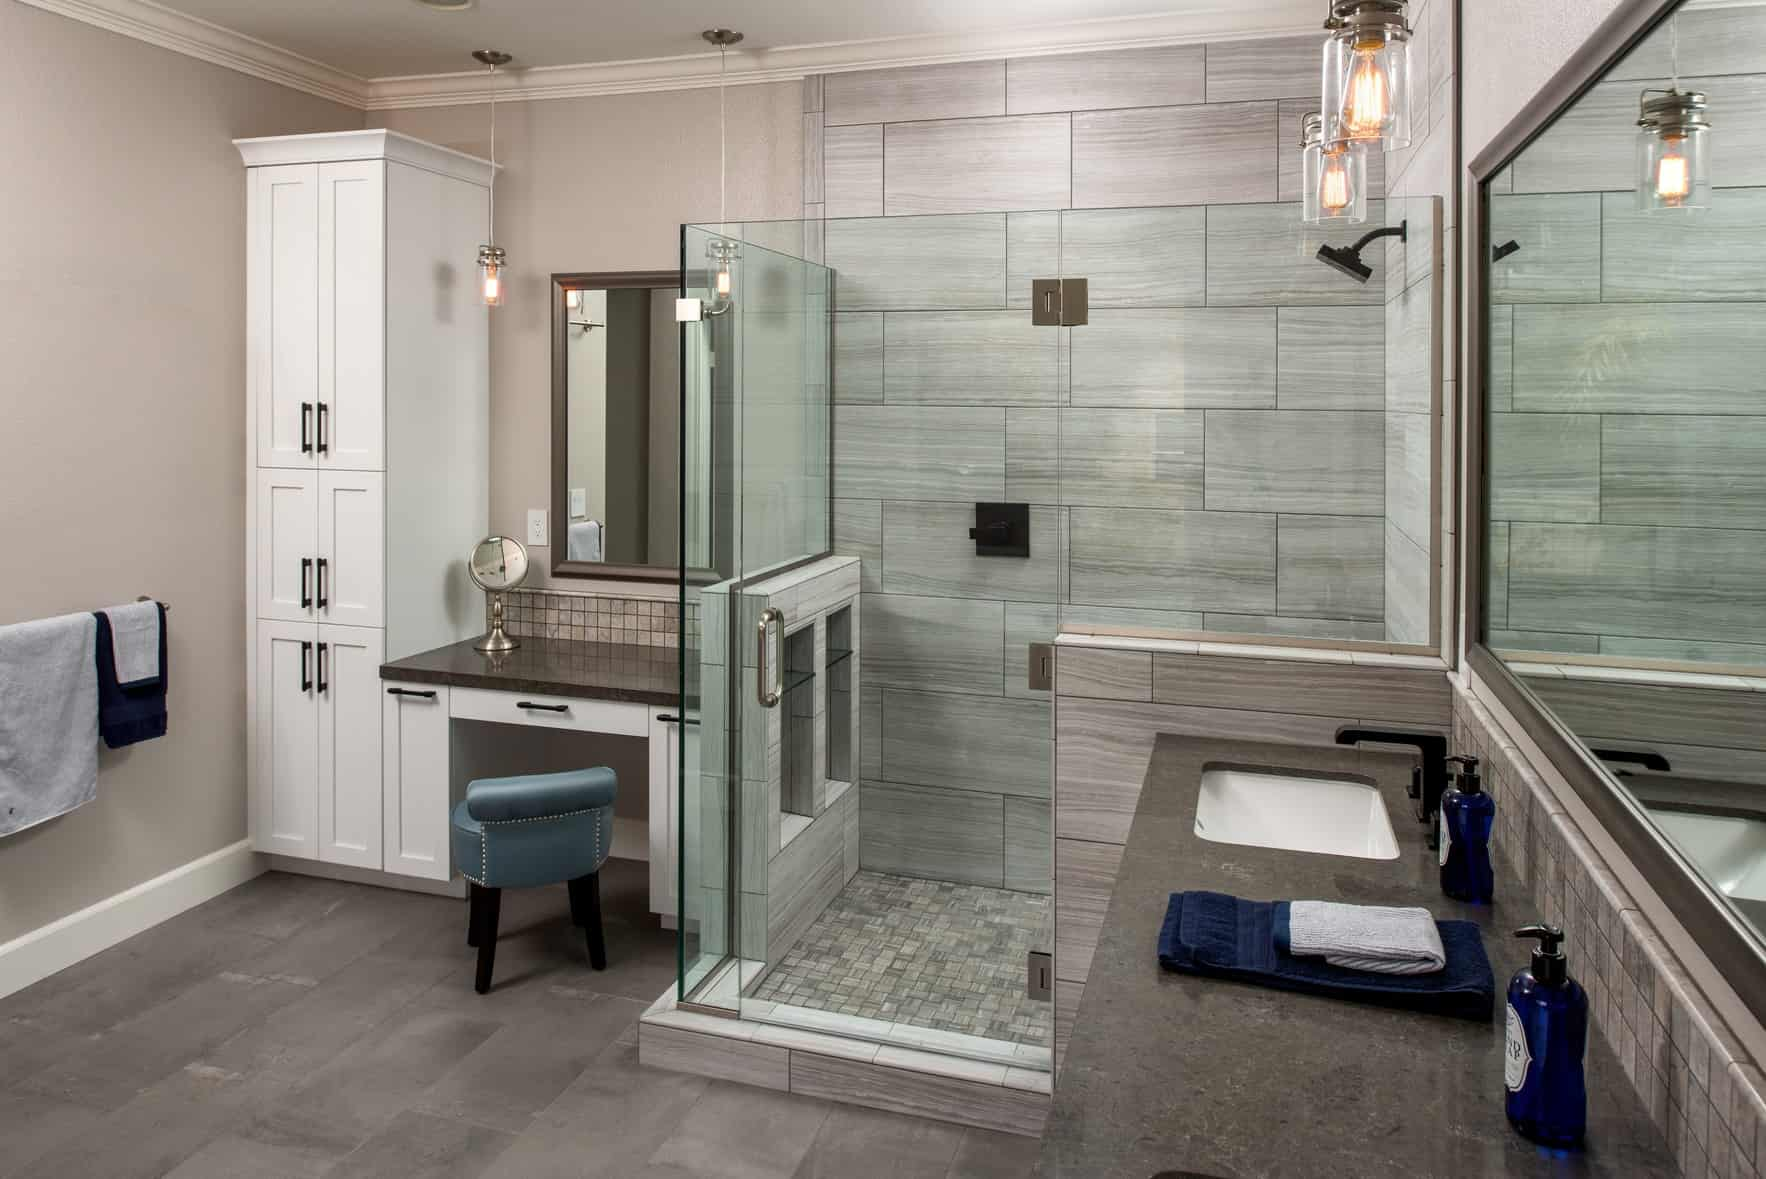 Contemporary vs Traditional Bathroom Remodel | Remodel Works on Restroom Renovation  id=80604